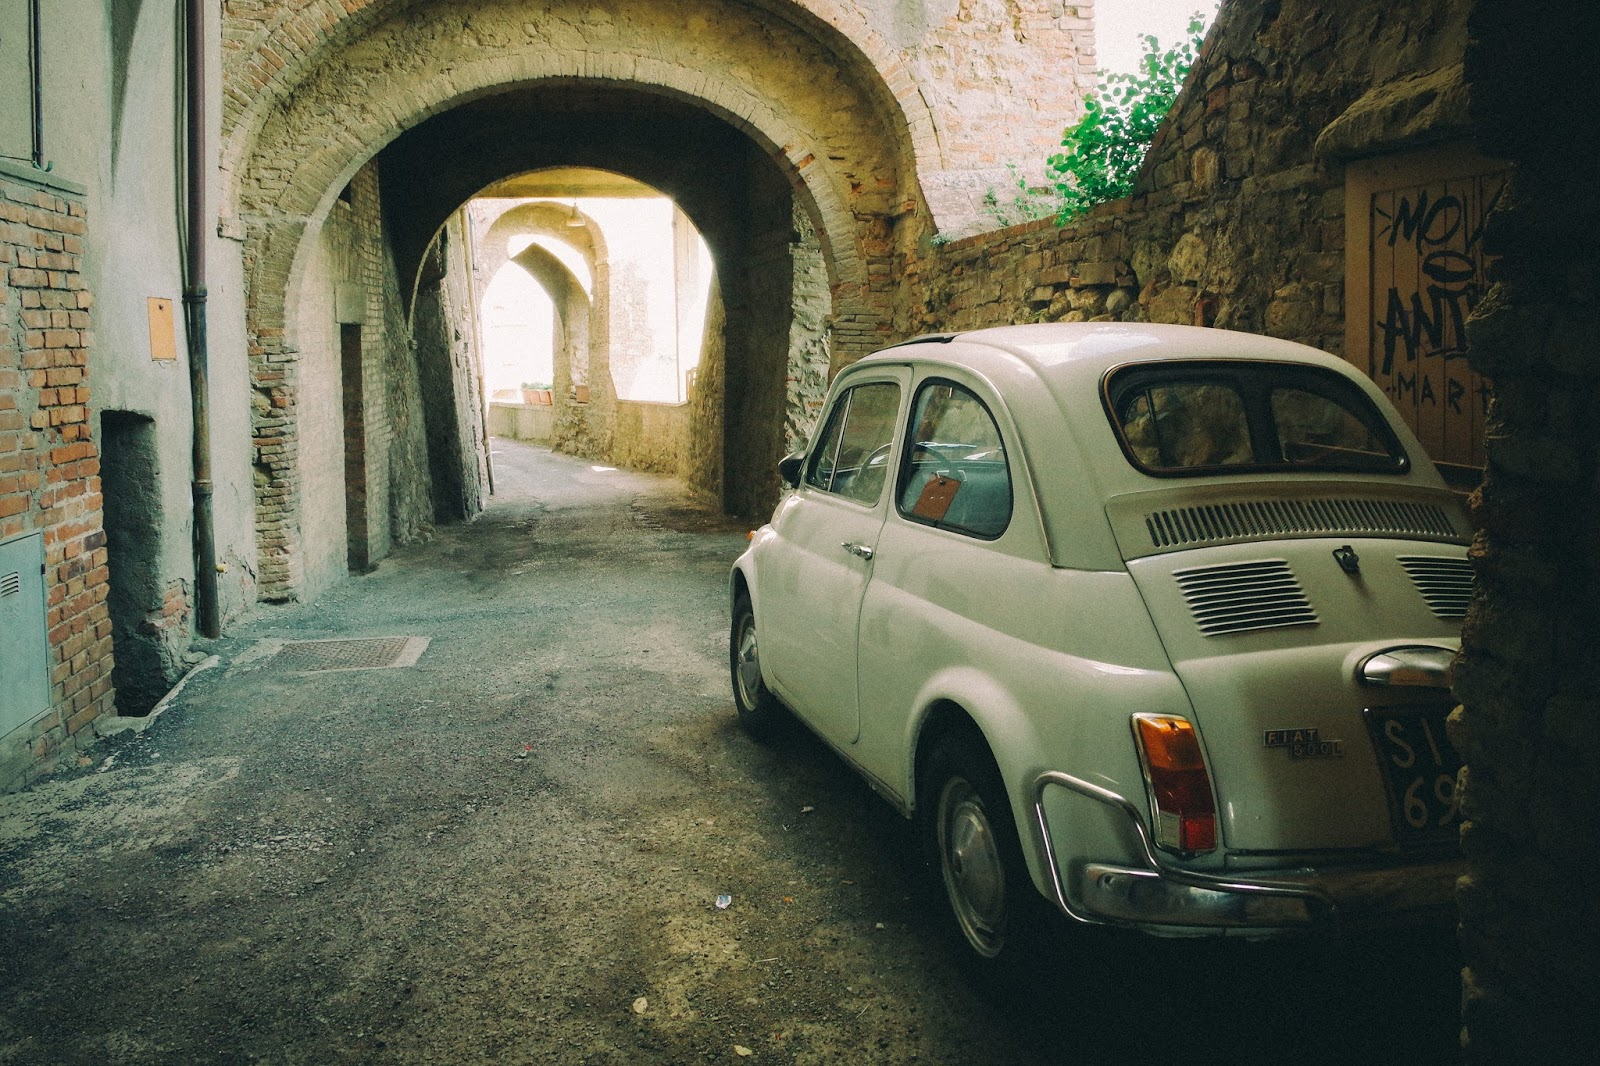 Travelling by car safely - Fiat driving through old arches in a town in Italy